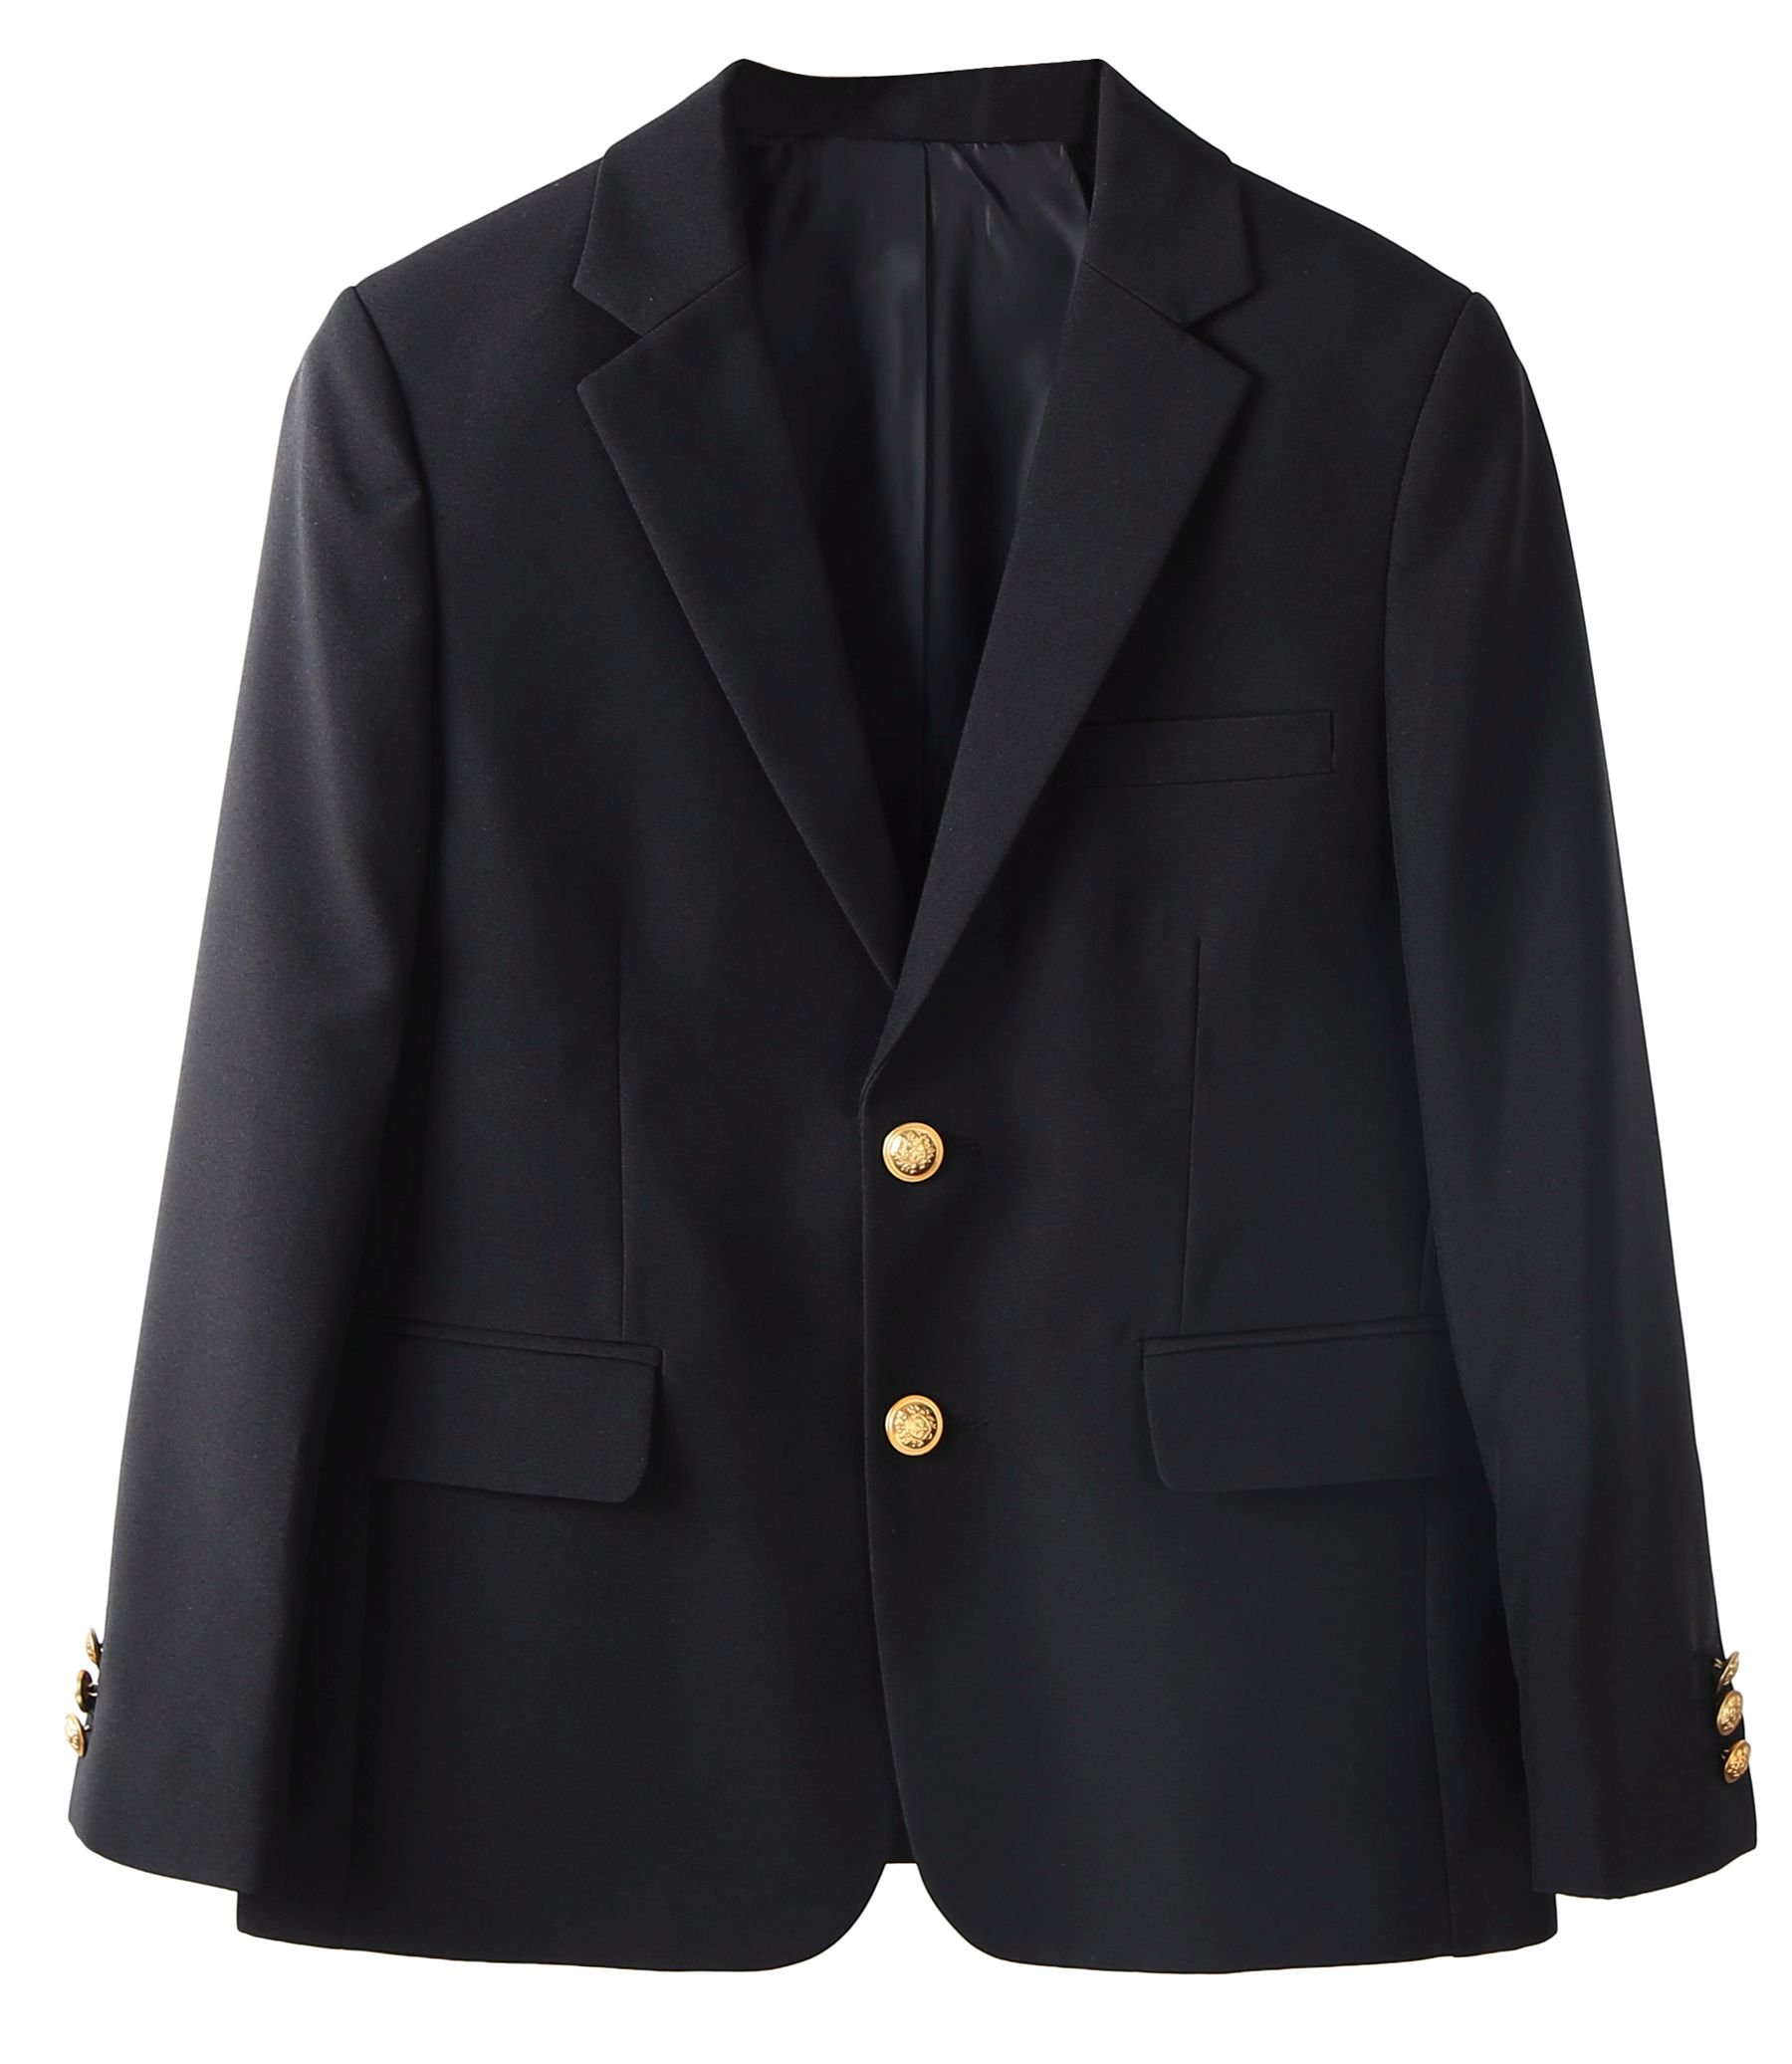 Bienzoe Boy's School Uniform Blazer Black 14